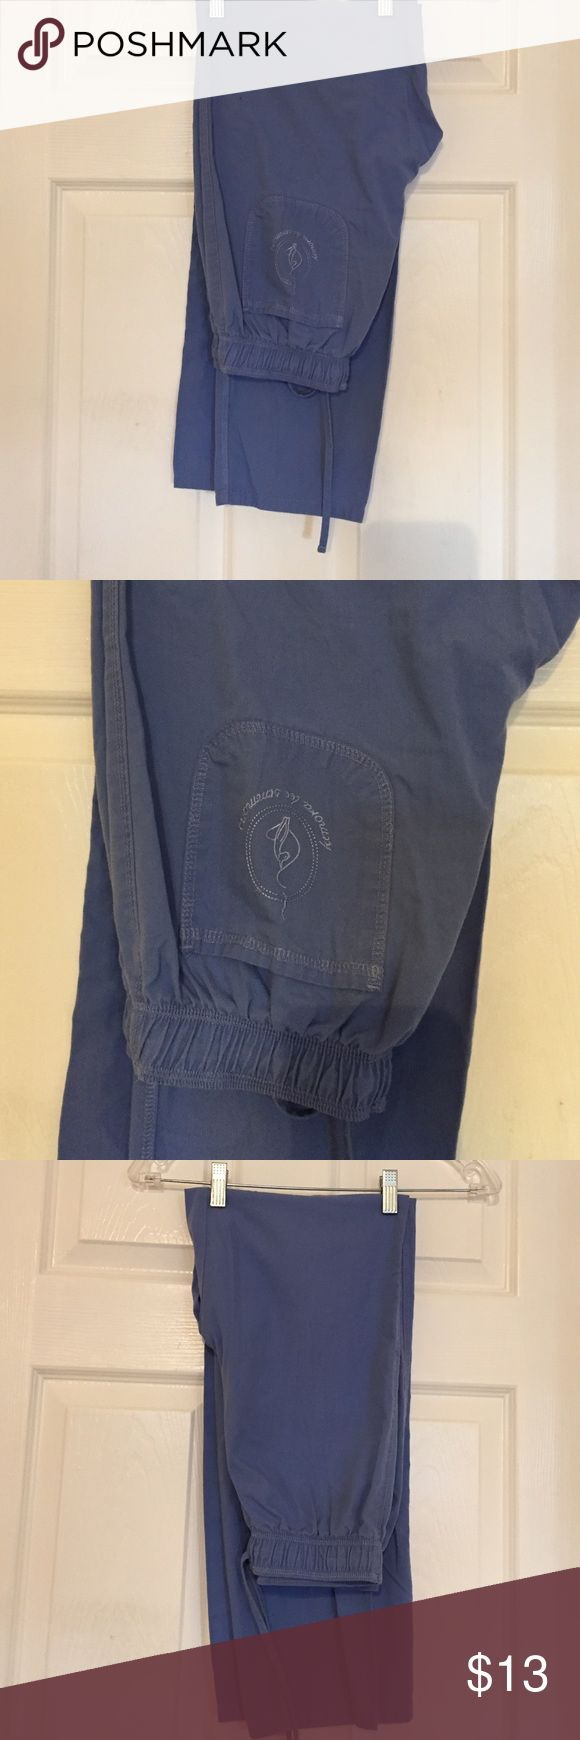 Baby Phat scrub pants Great condition, 1 small mark see pic 4. Elastic & draw string at waist. Baby Phat Pants